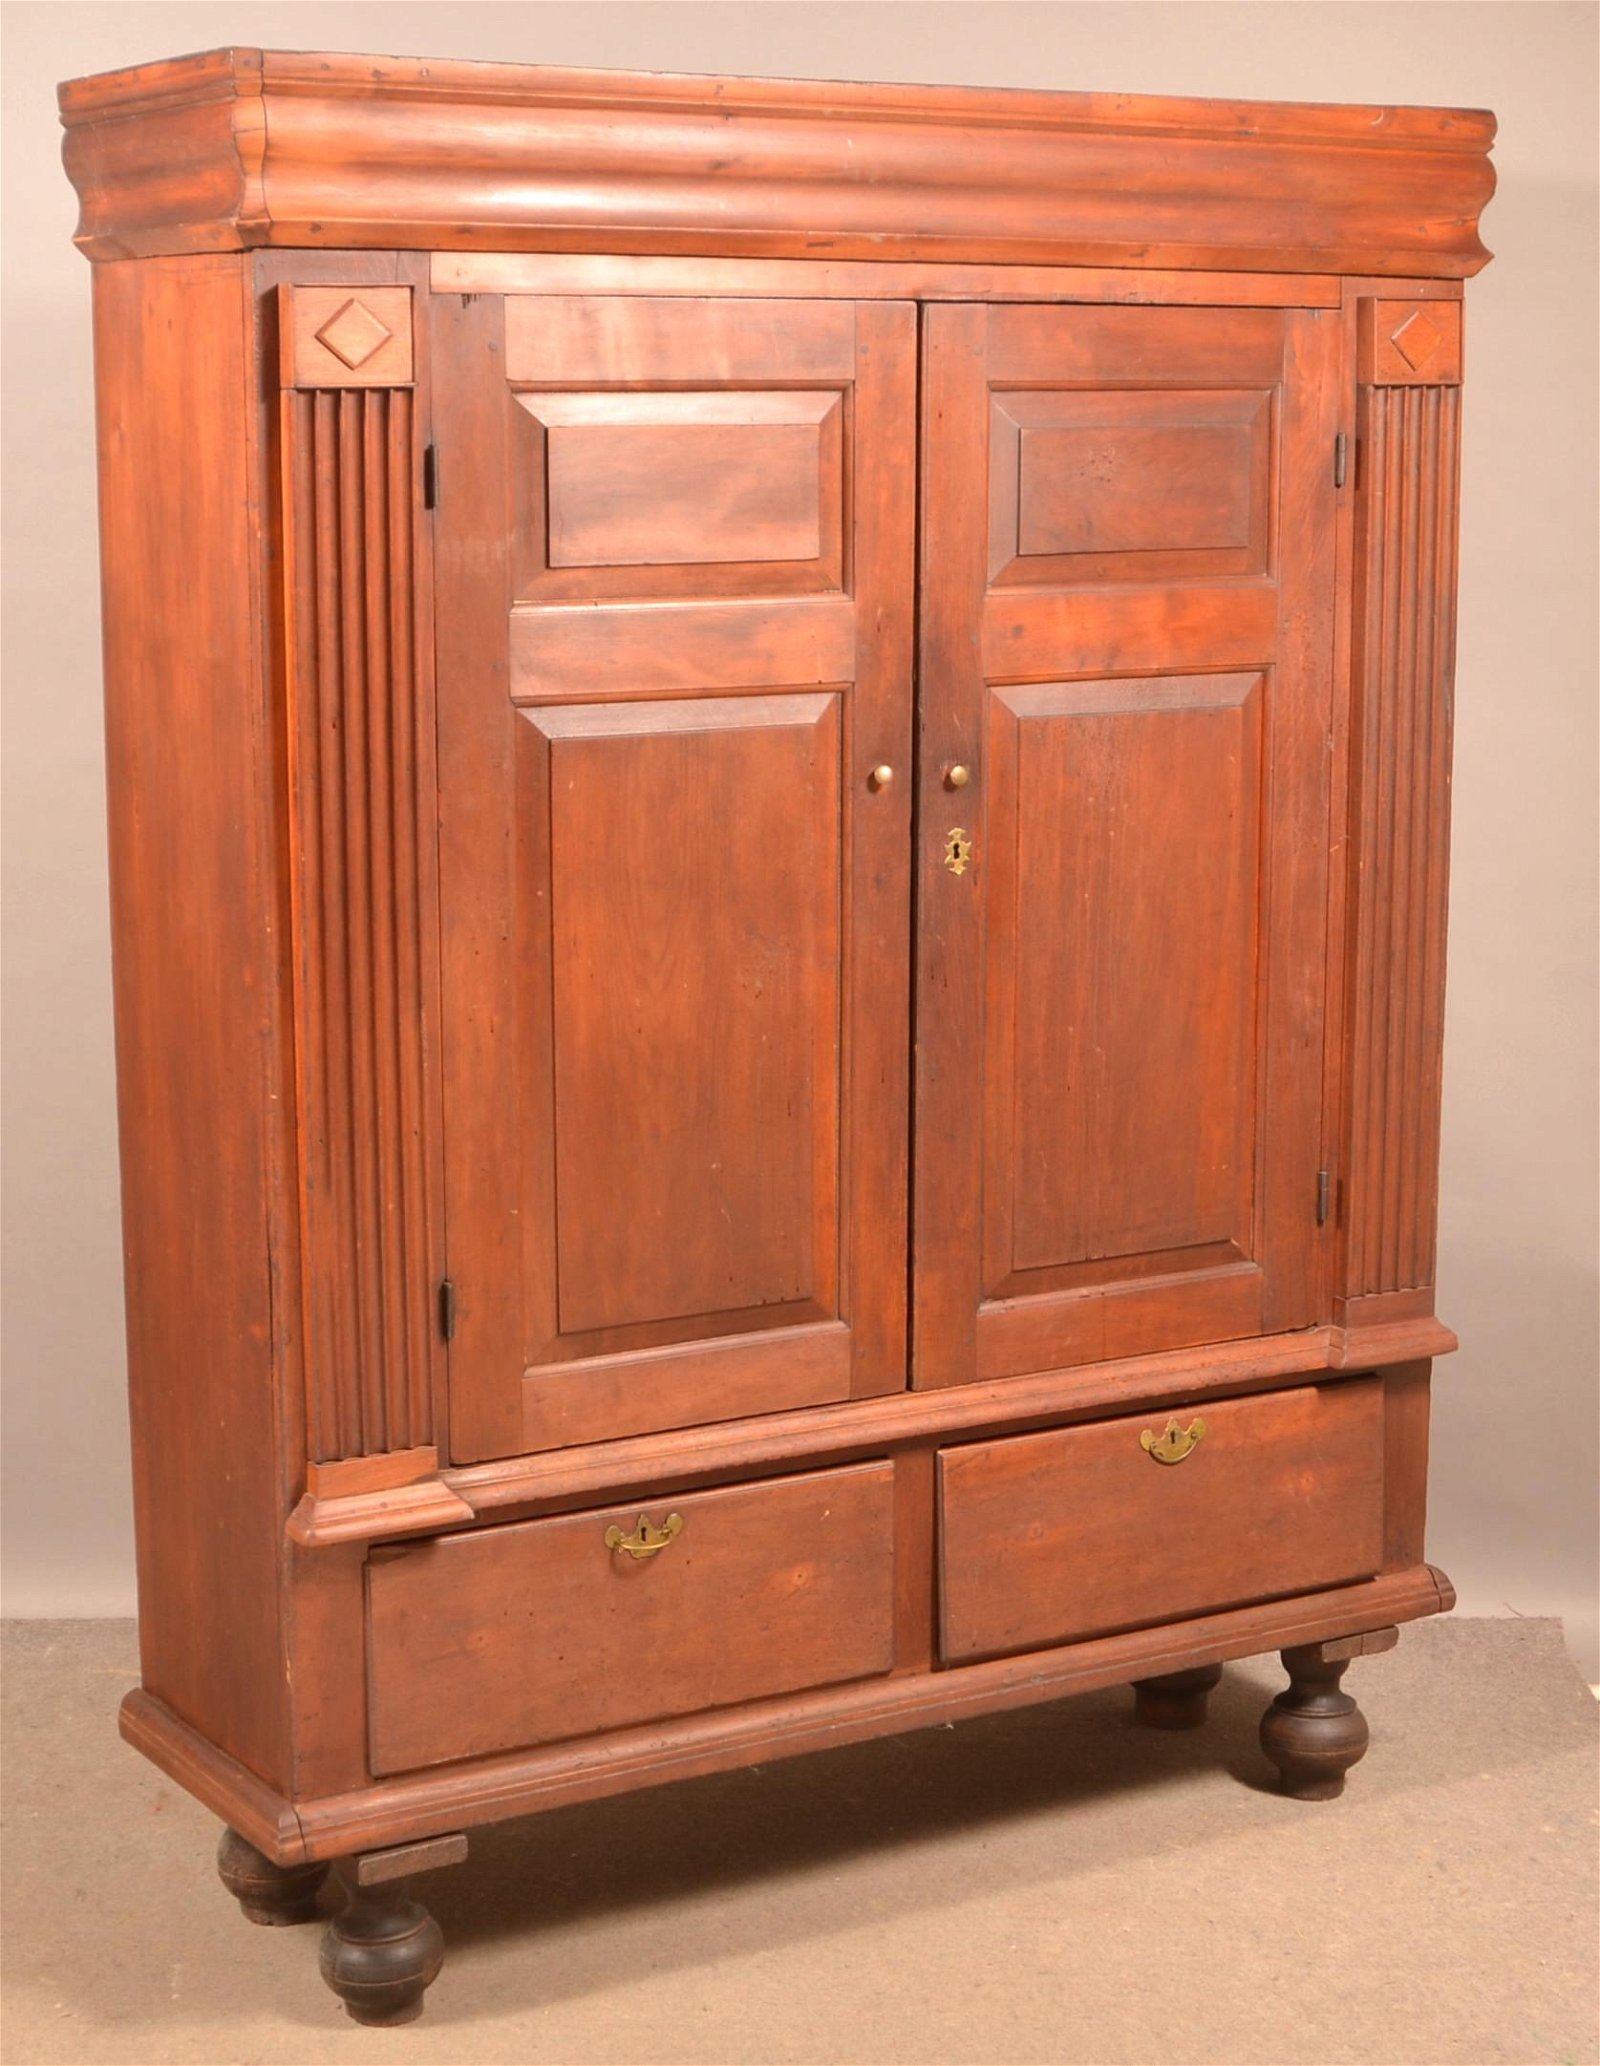 Late 18th Century Architectural Gumwood Kas.